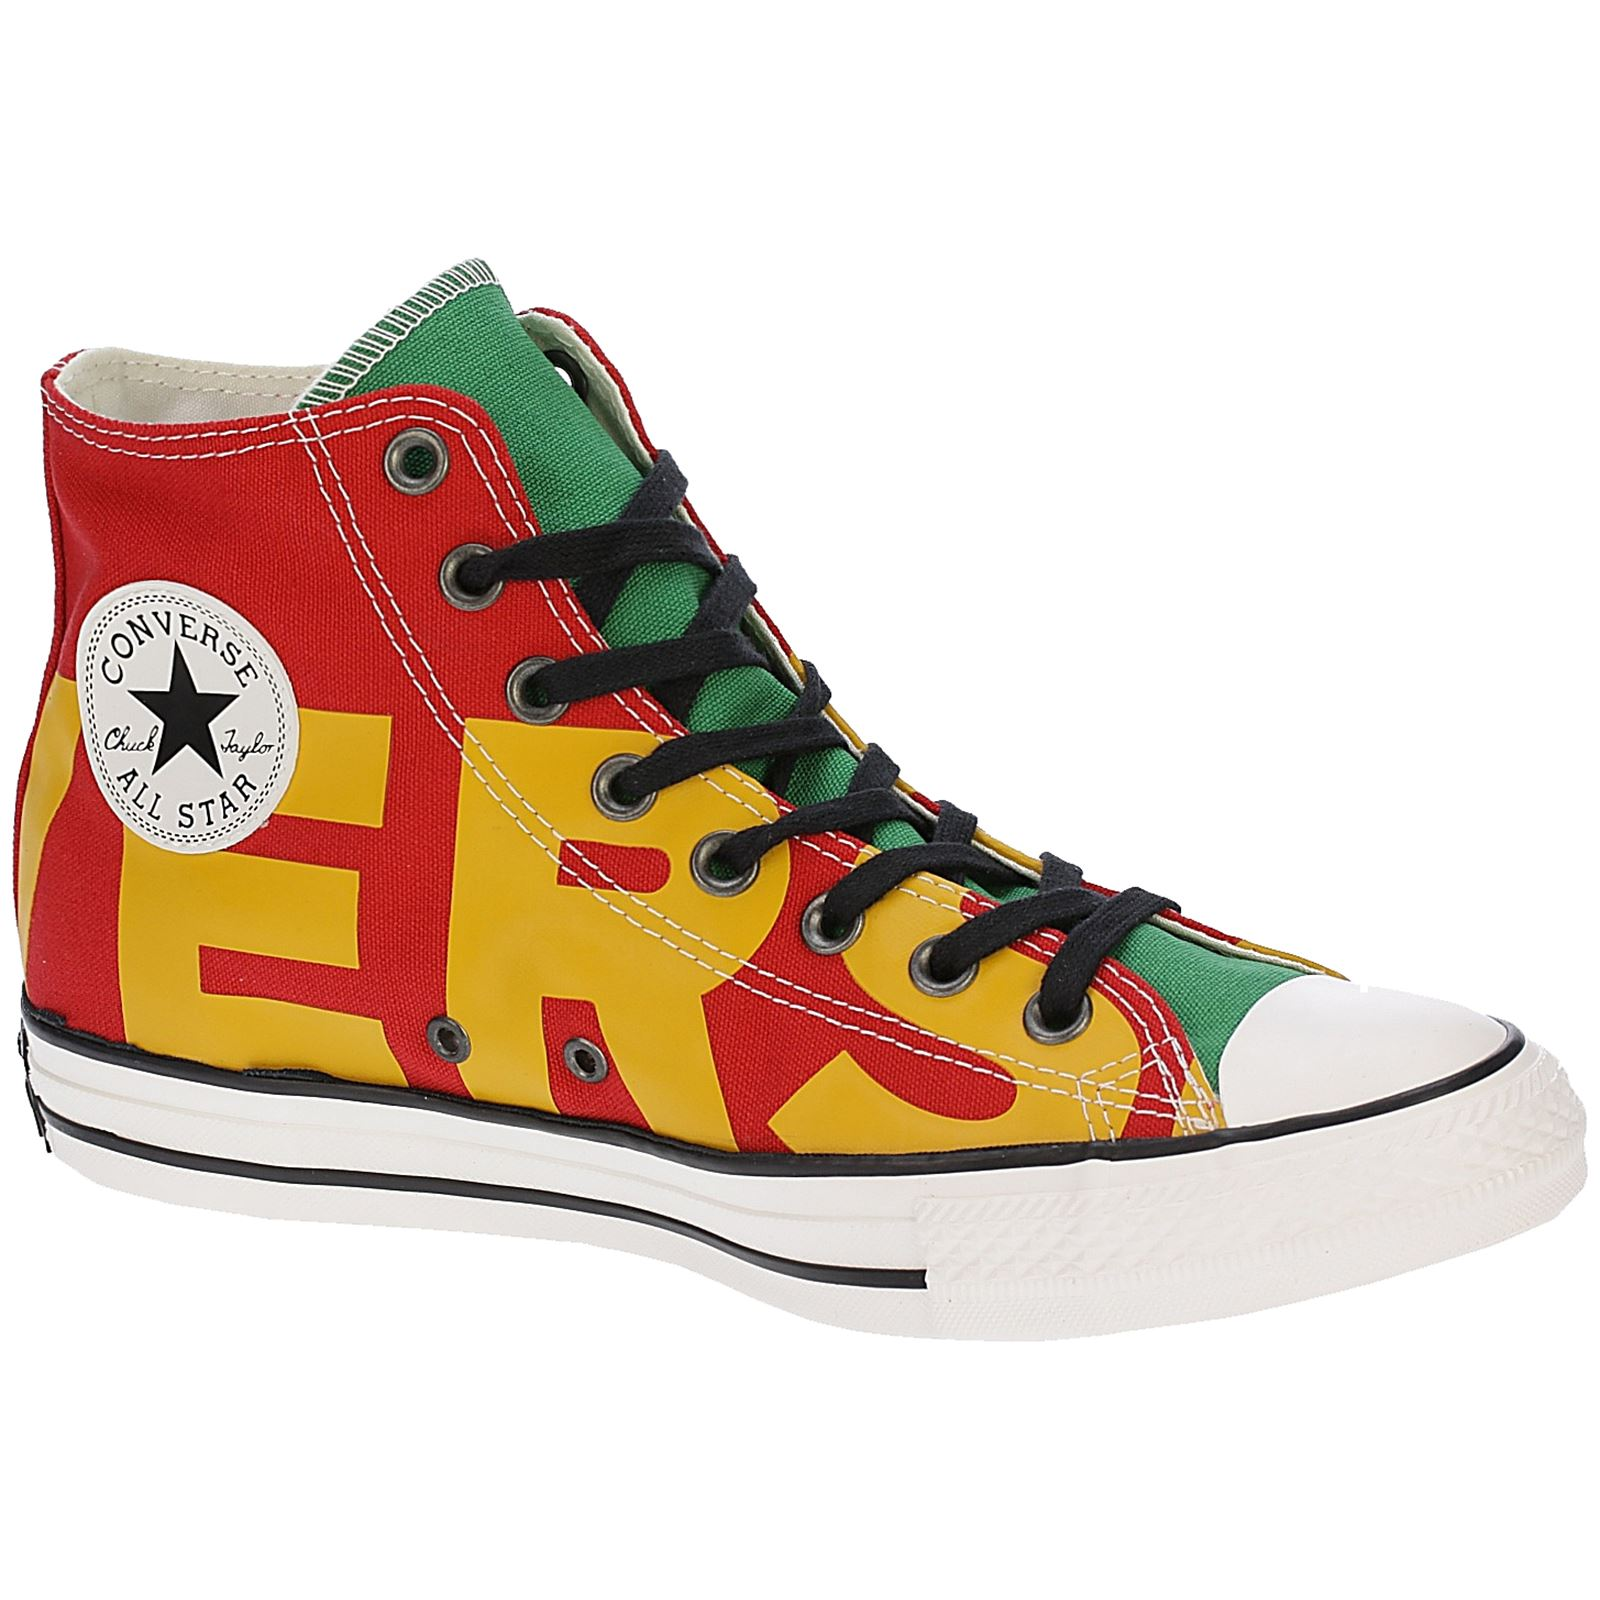 619997acd69 Converse Chuck Taylor All Star Hi Enamel Red Yellow Men Canvas High-top  Trainers